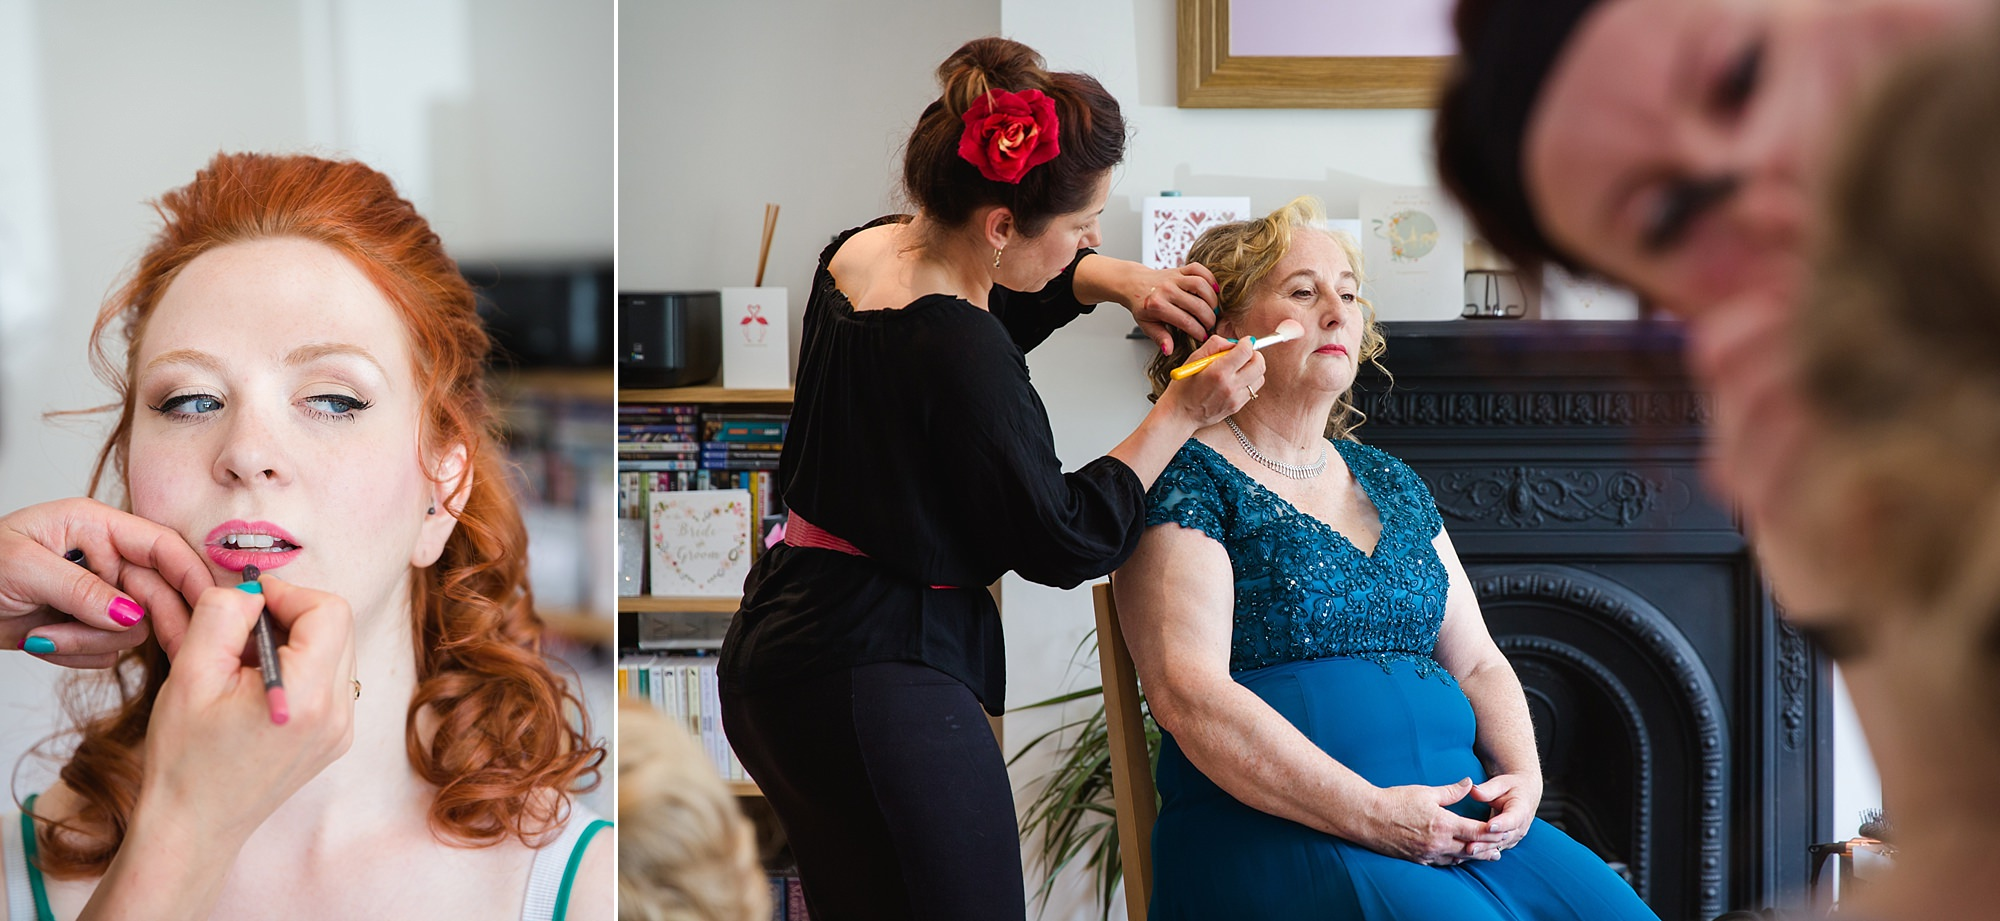 oyster shed wedding makeup application for bride and her mother